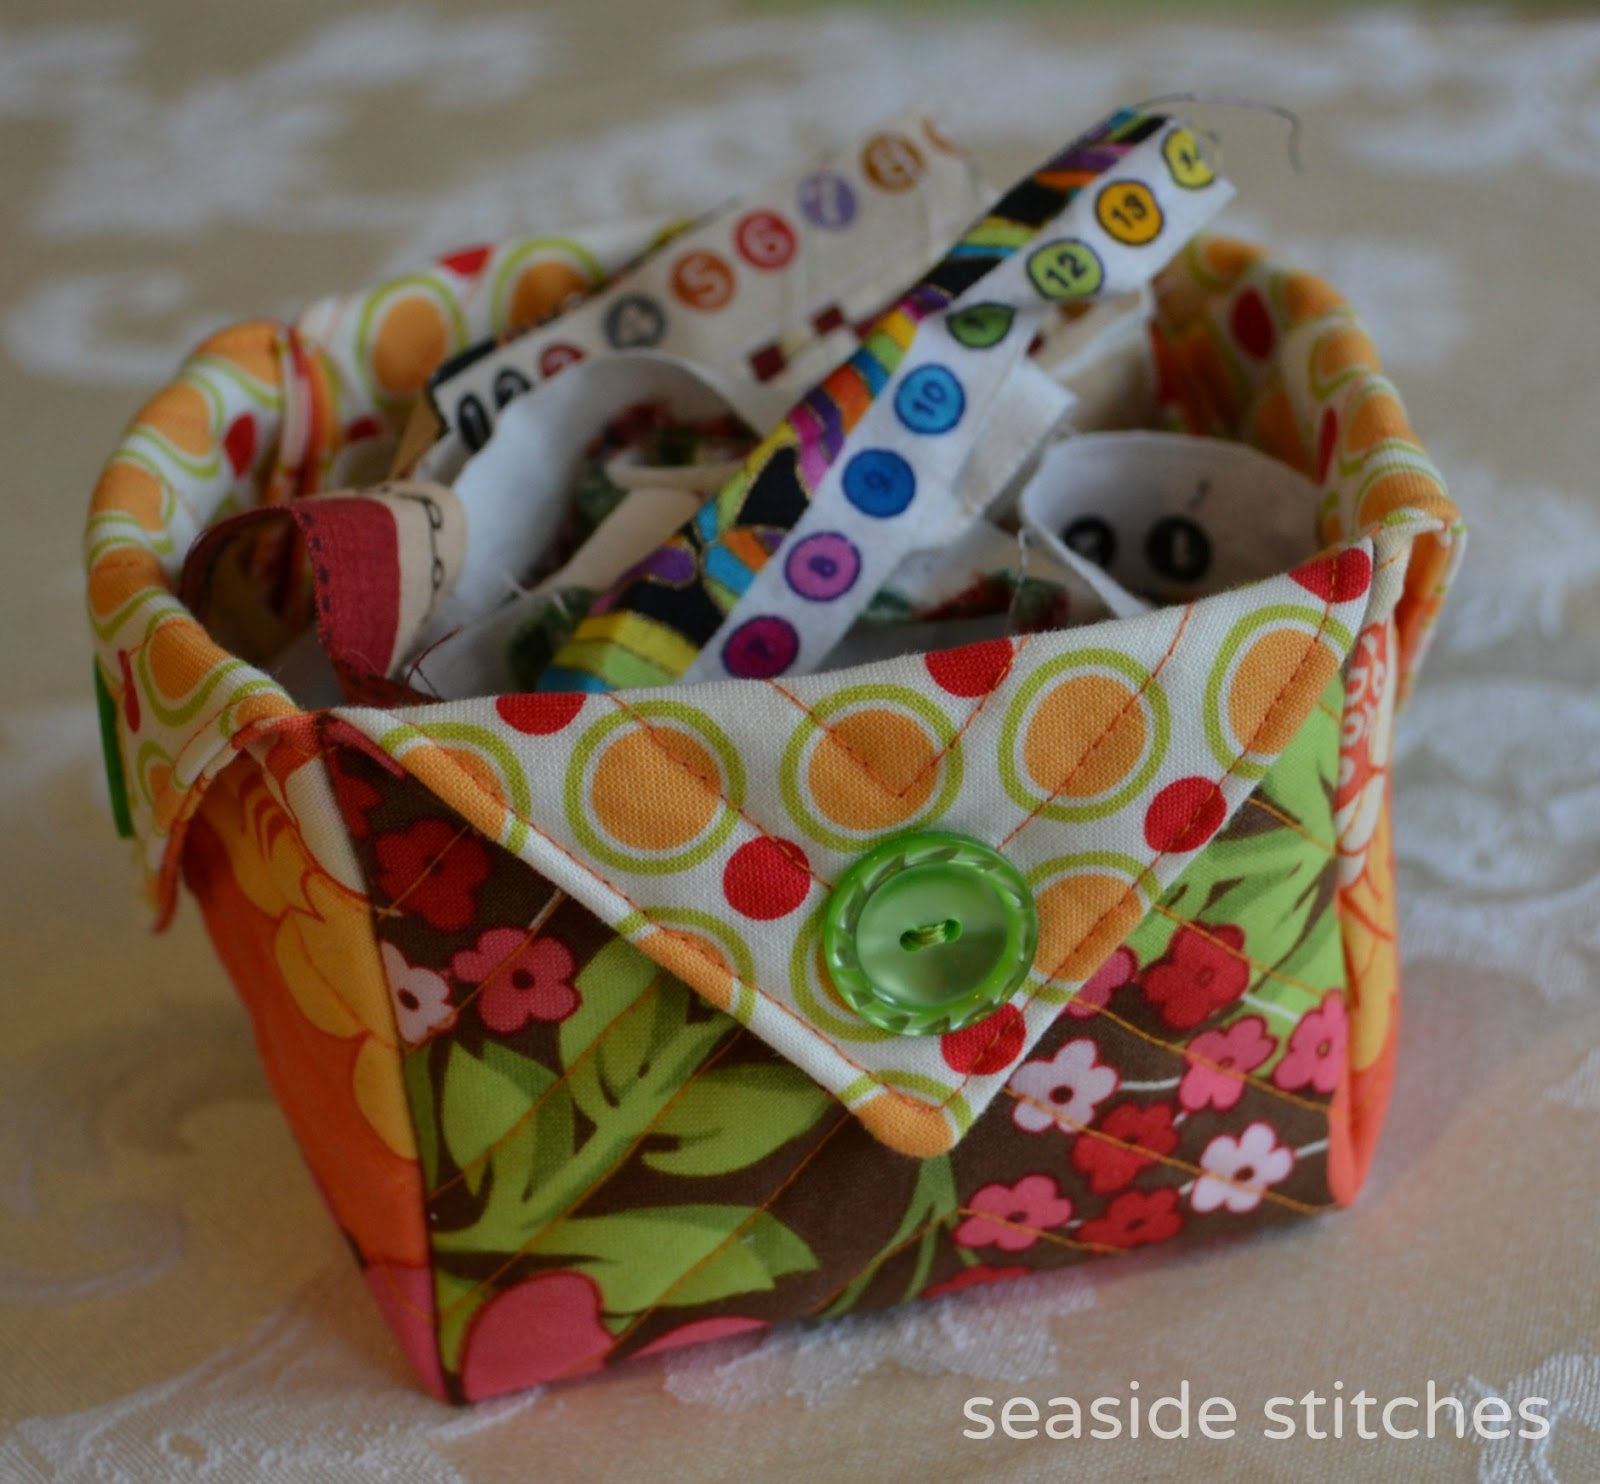 http://seaside-stitches.blogspot.com/2013/03/fabric-box-tutorial.html